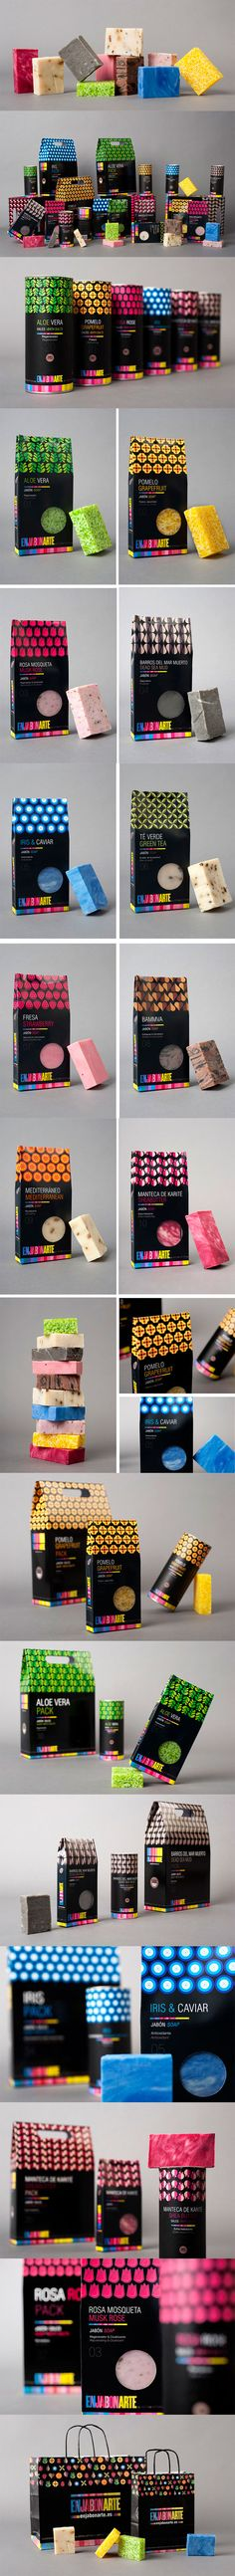 Enjabonarte packaging #soaps #soappackaging